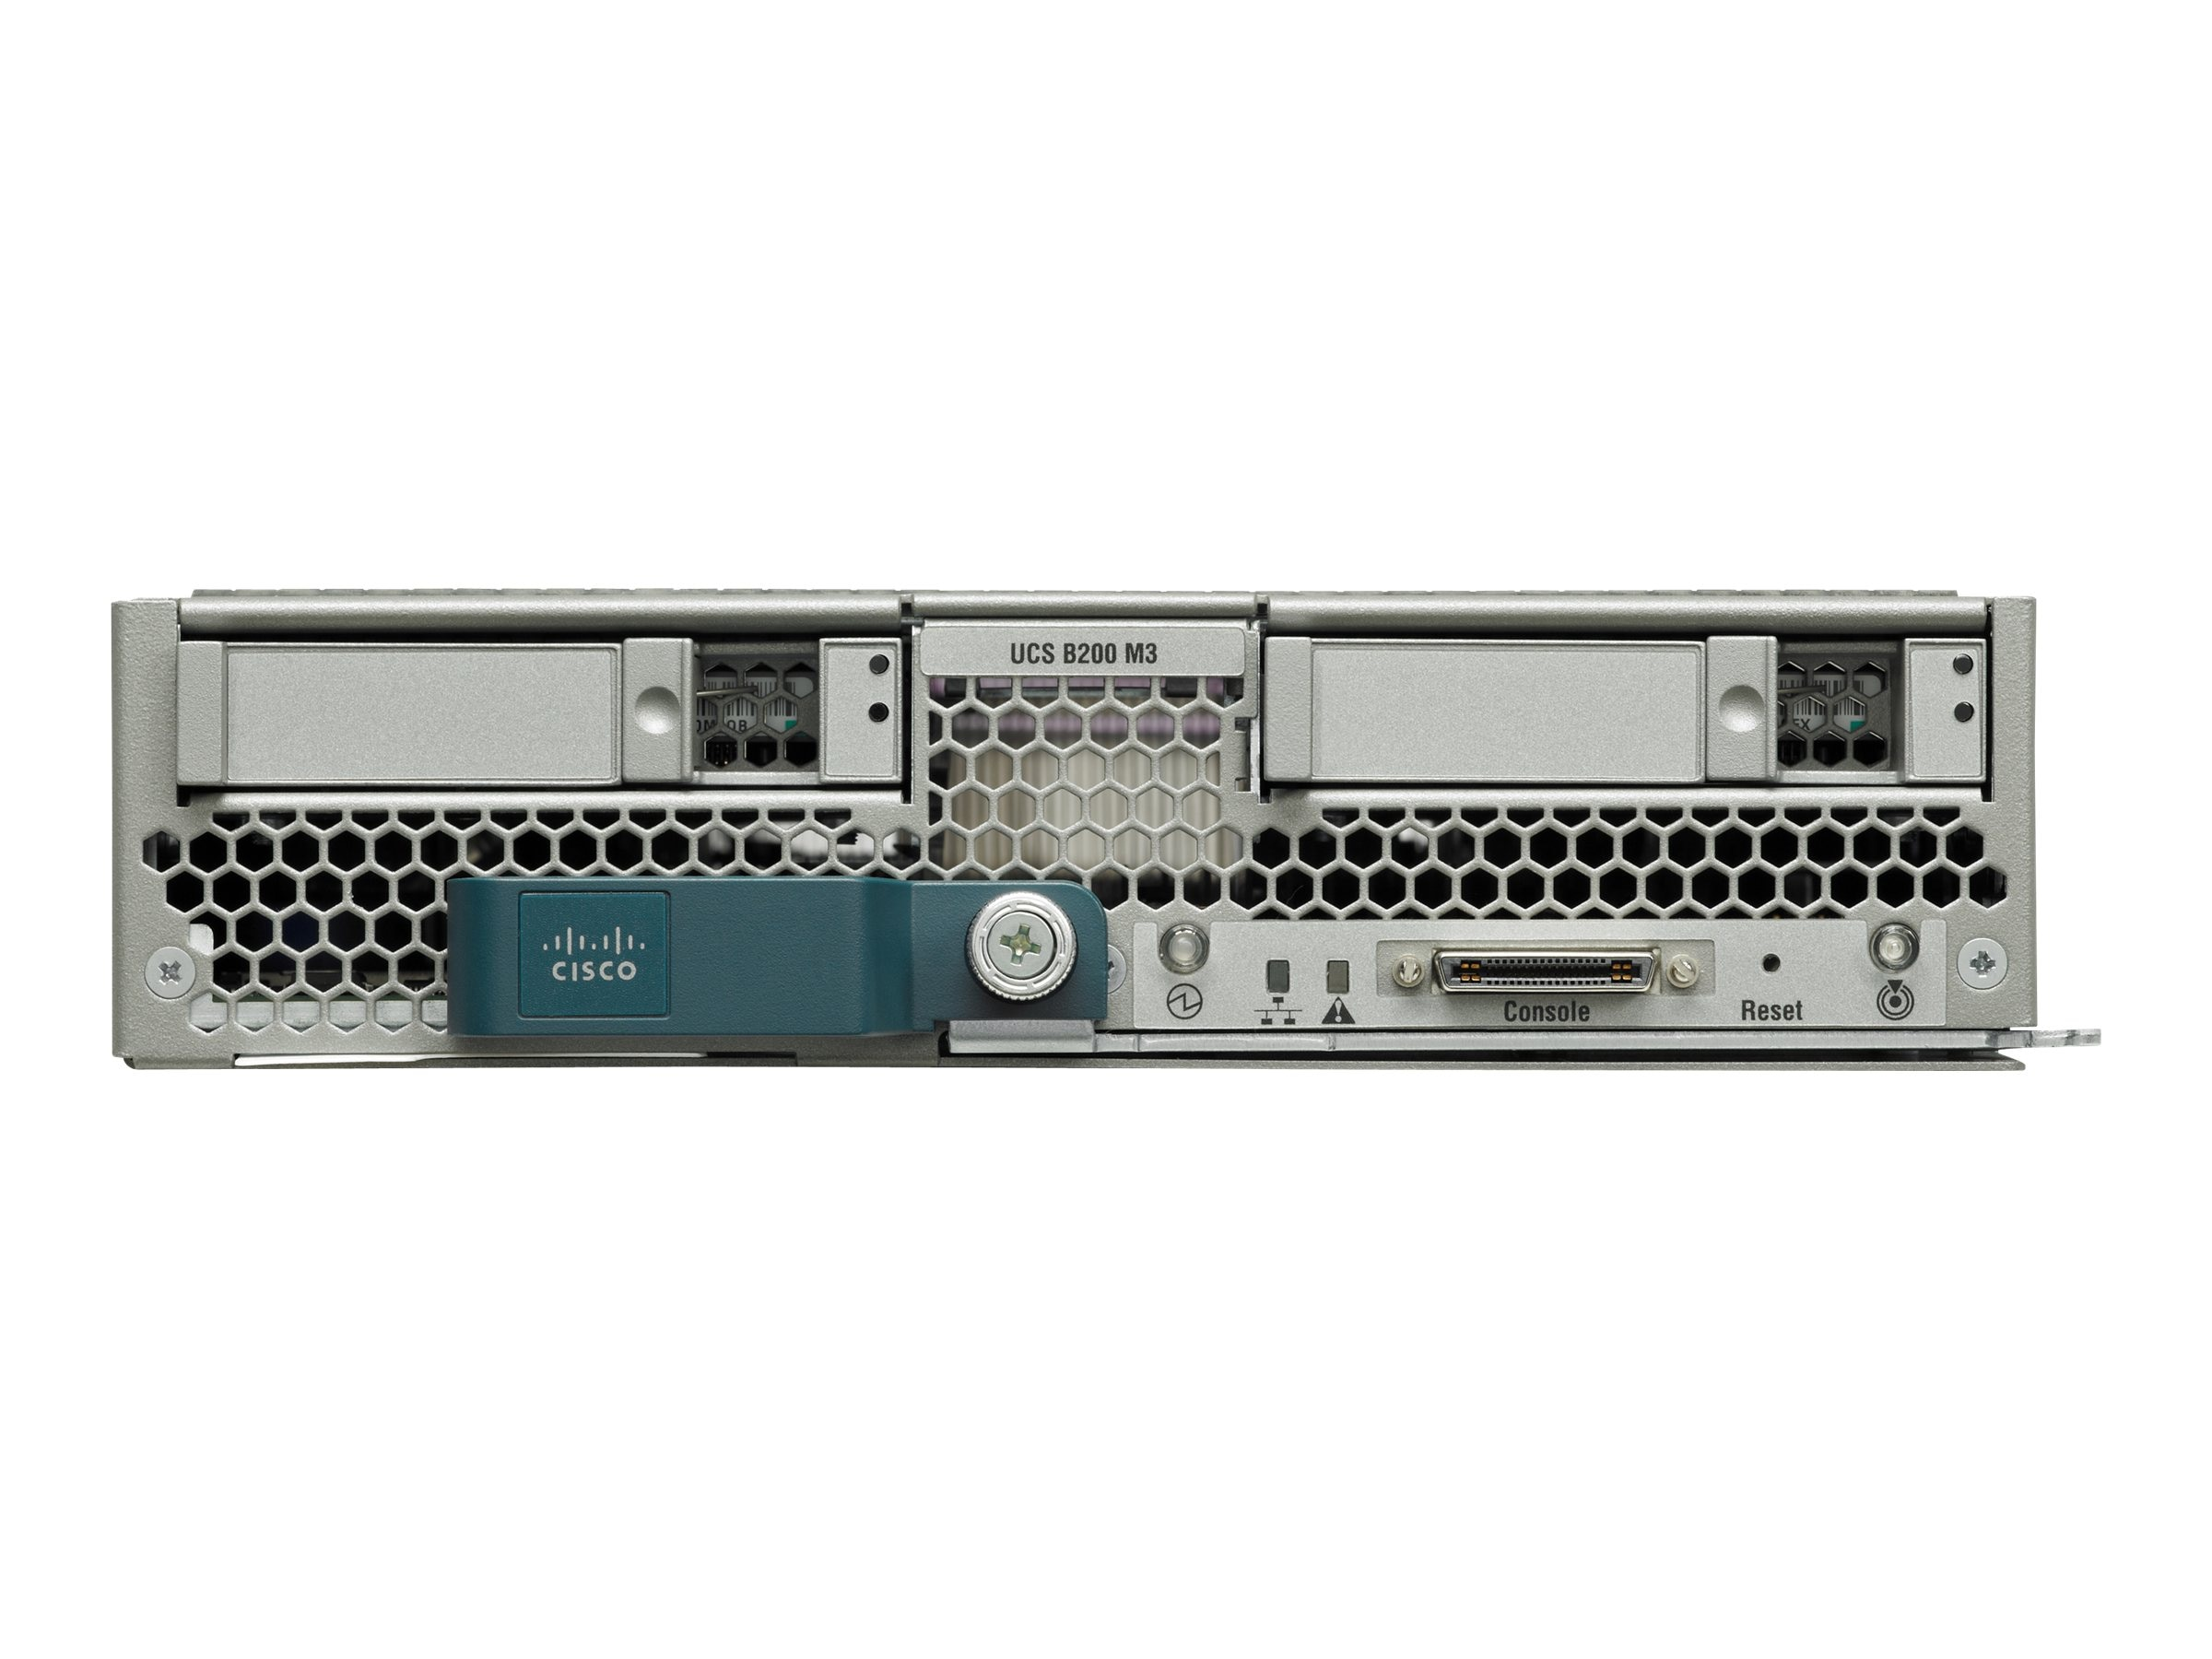 Cisco UCS B200 SP7 Perf Exp, UCS-SP7-SR-B200-P, 16414339, Servers - Blade